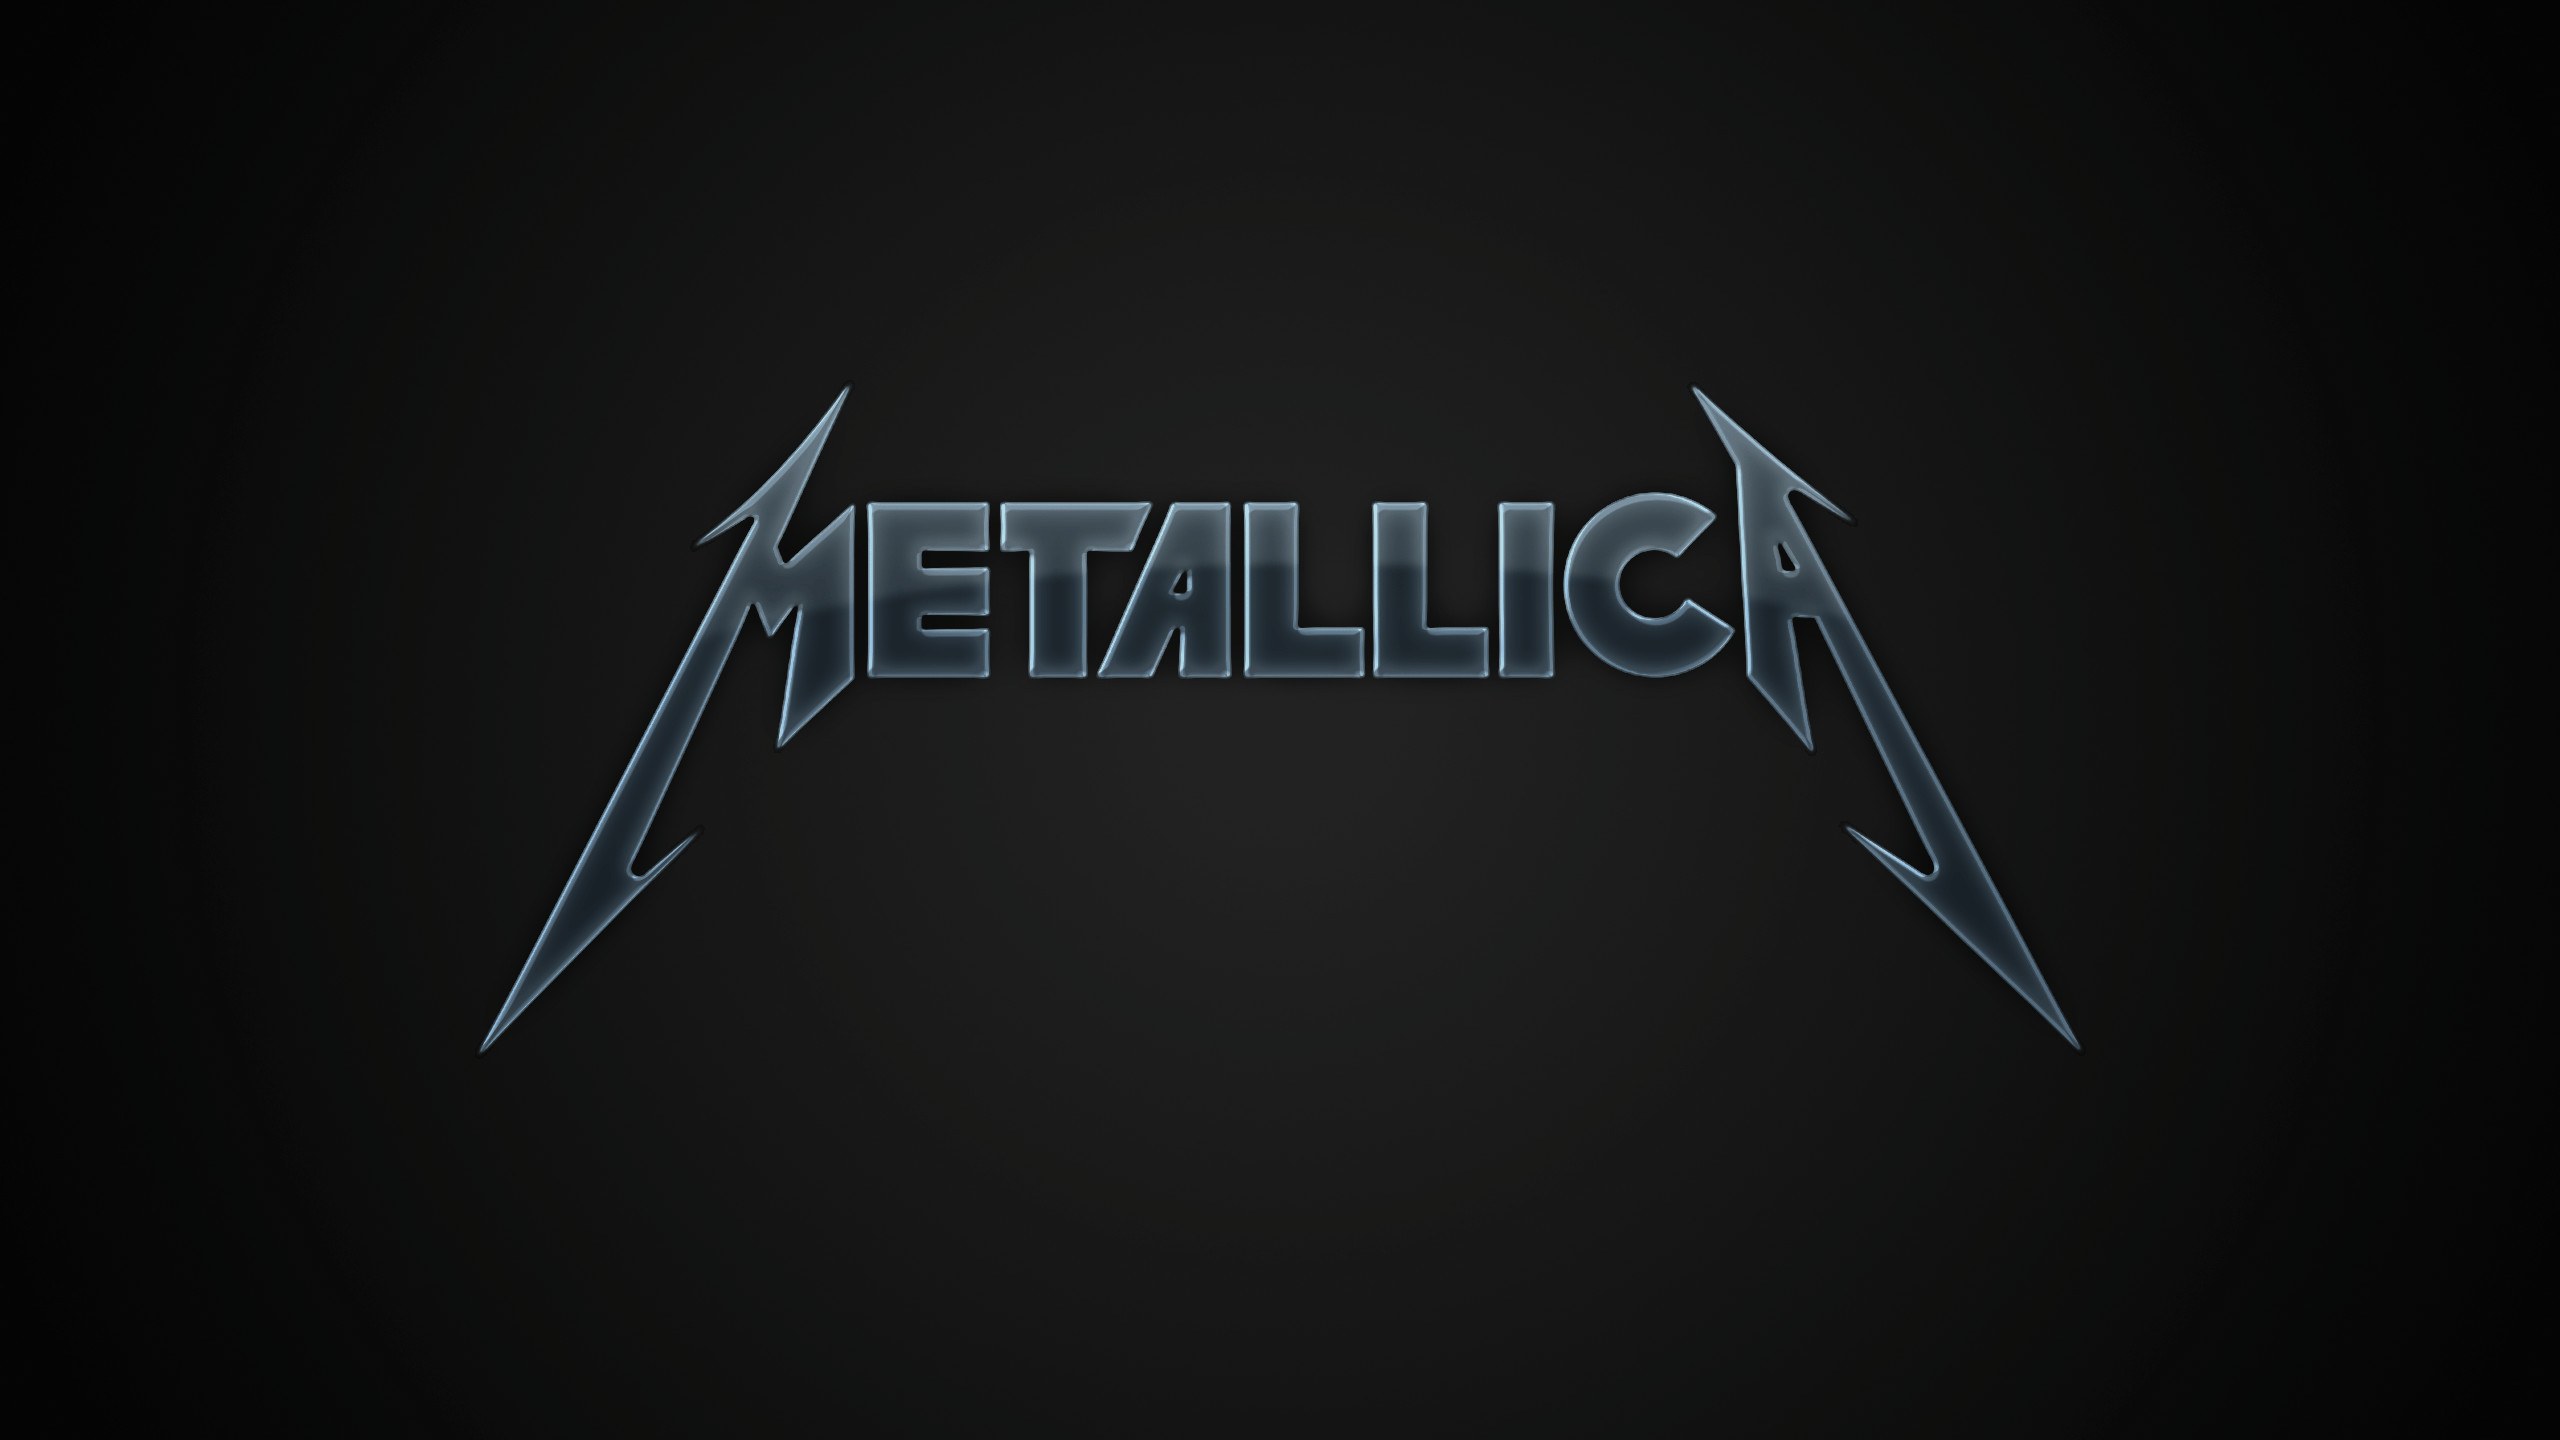 … Great Metallica Wallpaper of awesome full screen HD wallpapers to  download for free. You can